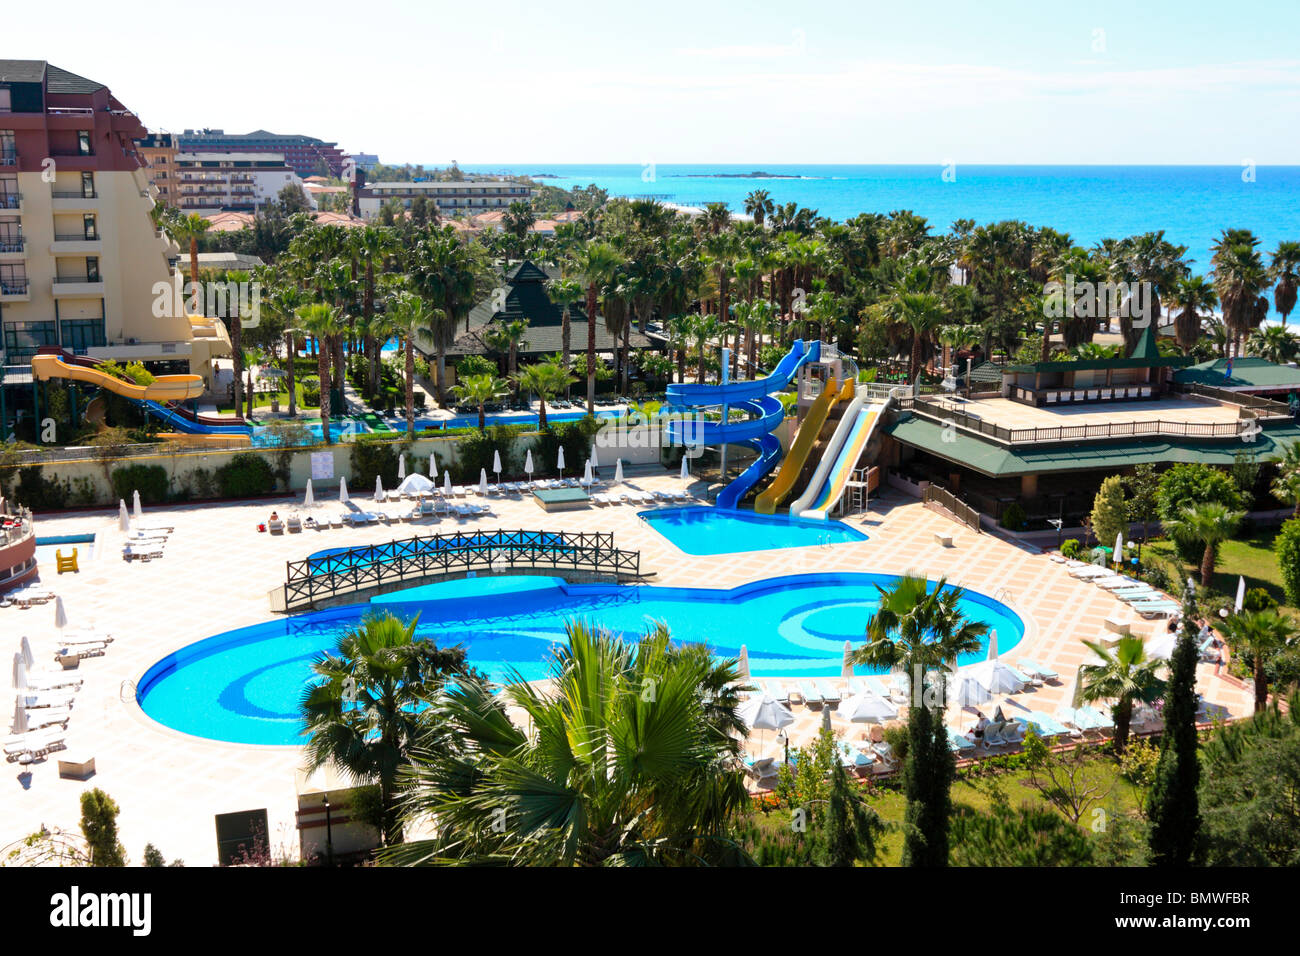 hotel schwimmbad mit wasserrutsche in alanya t rkei stockfoto bild 30064379 alamy. Black Bedroom Furniture Sets. Home Design Ideas